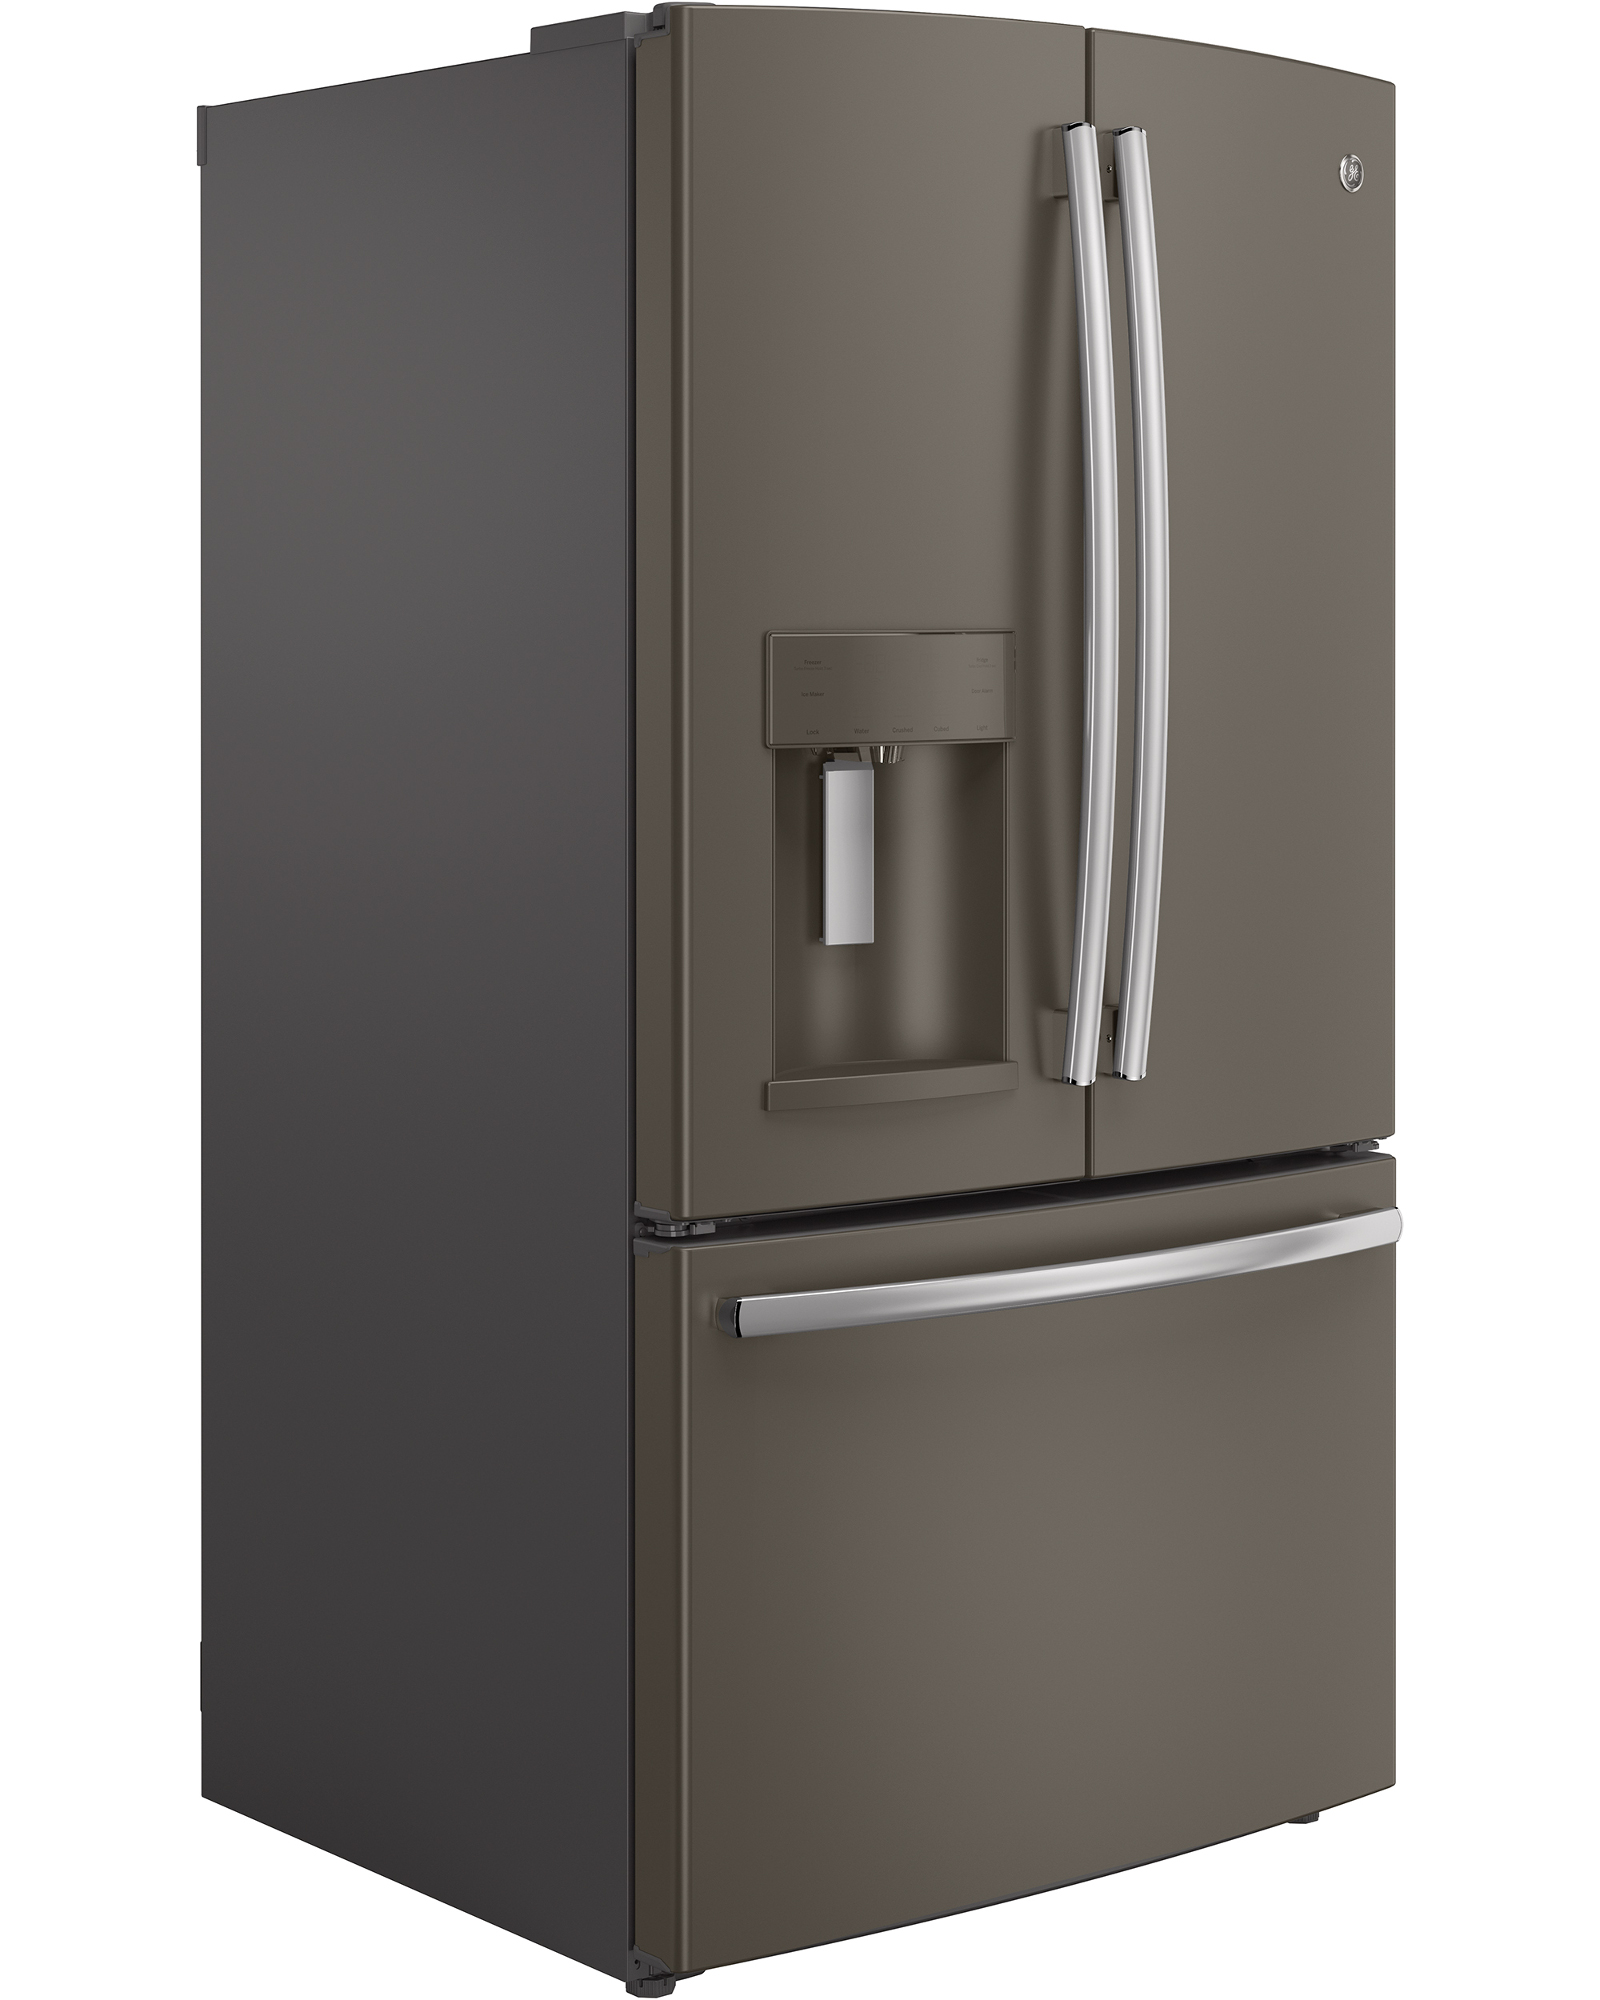 GE Appliances GFE26GMHES 25.7 cu. ft. French-Door Ice and Water Refrigerator - Slate